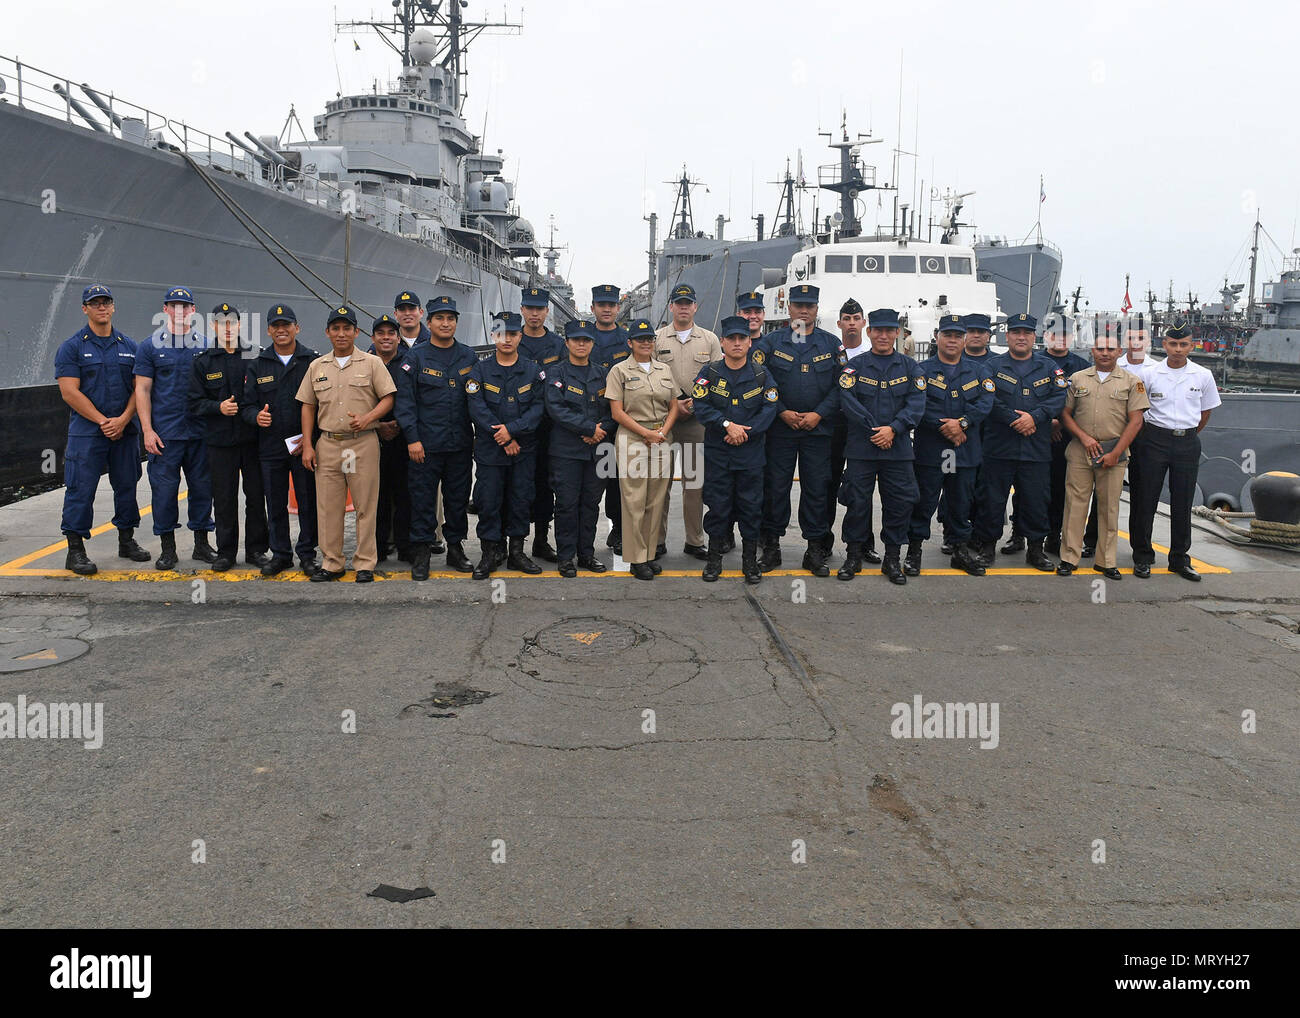 170716-N-PQ607-068  LIMA, Peru (July 16, 2917) - U.S. Coast Guard Lt. Andrew Ray conducts a maritime law enforcement symposium with UNITAS partner nation participants from Mexico, Peru, Honduras and Chile. UNITAS is an annual exercise that focuses on strengthening our existing regional partnerships and encourages establishing new relationships through the exchange of maritime mission-focused knowledge and expertiese throughout the exercise. (U.S. Navy photo by Mass Communication Specialist 2nd Class Michael Hendricks/Released) - Stock Image